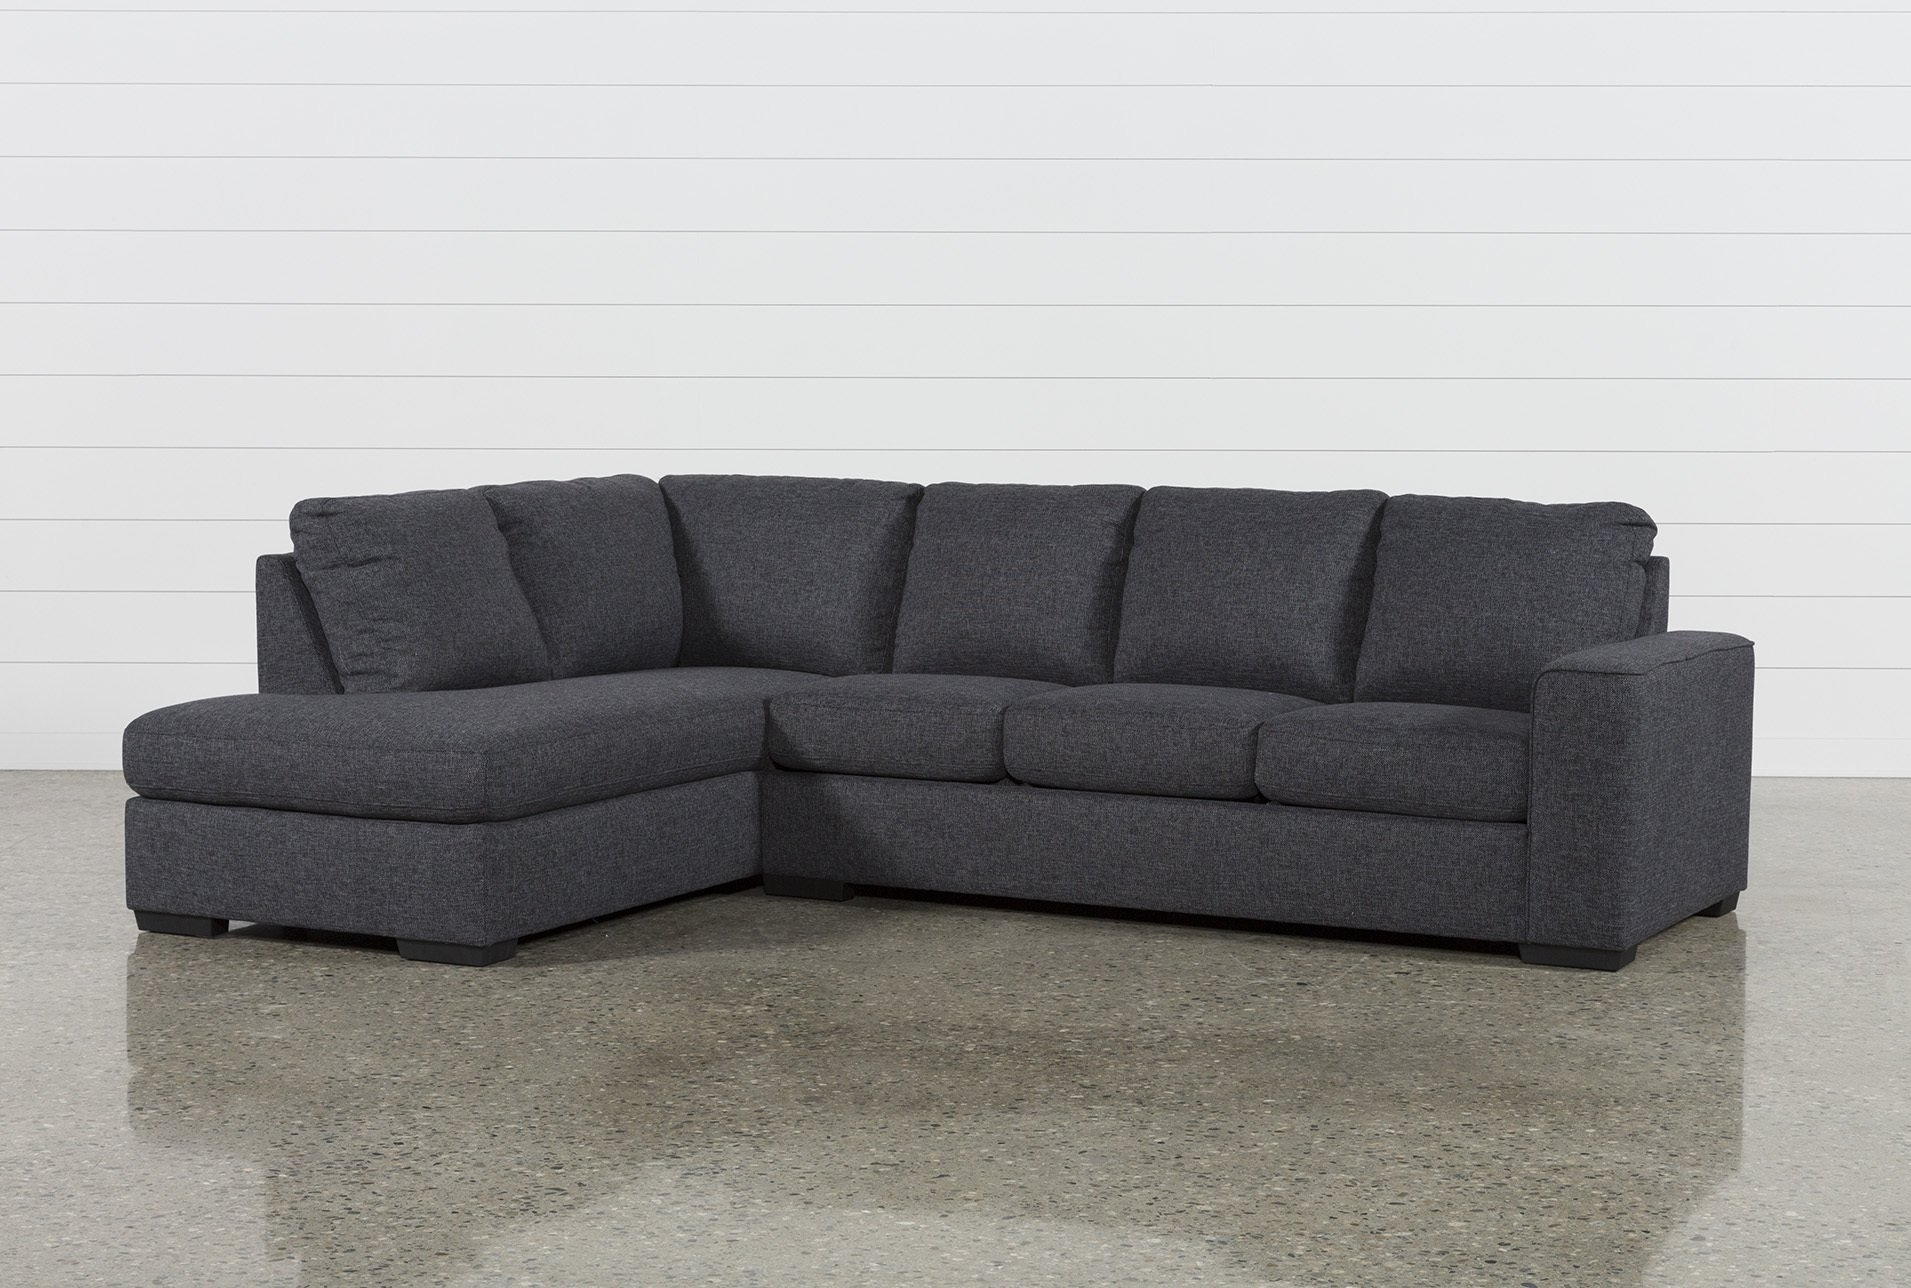 Lucy Dark Grey 2 Piece Sectional W/laf Chaise | Dark Grey And Products For Malbry Point 3 Piece Sectionals With Raf Chaise (Image 22 of 25)